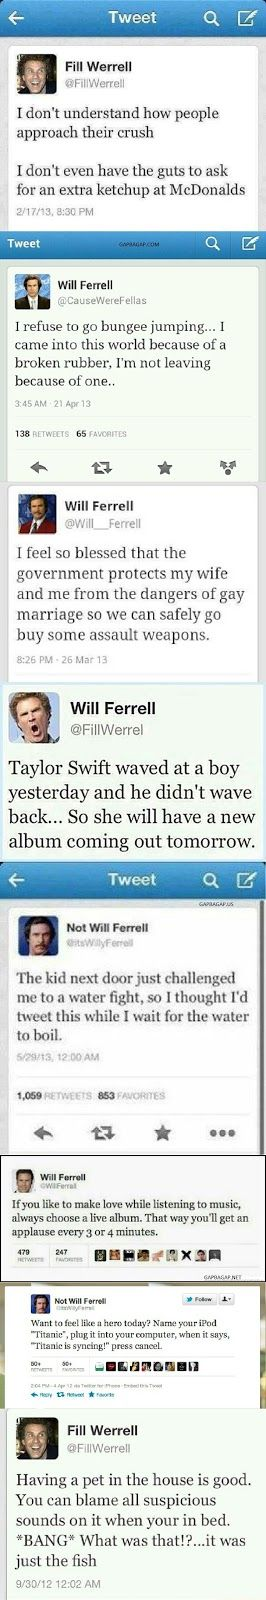 Top 8 Hilarious Tweets By Will Ferrell